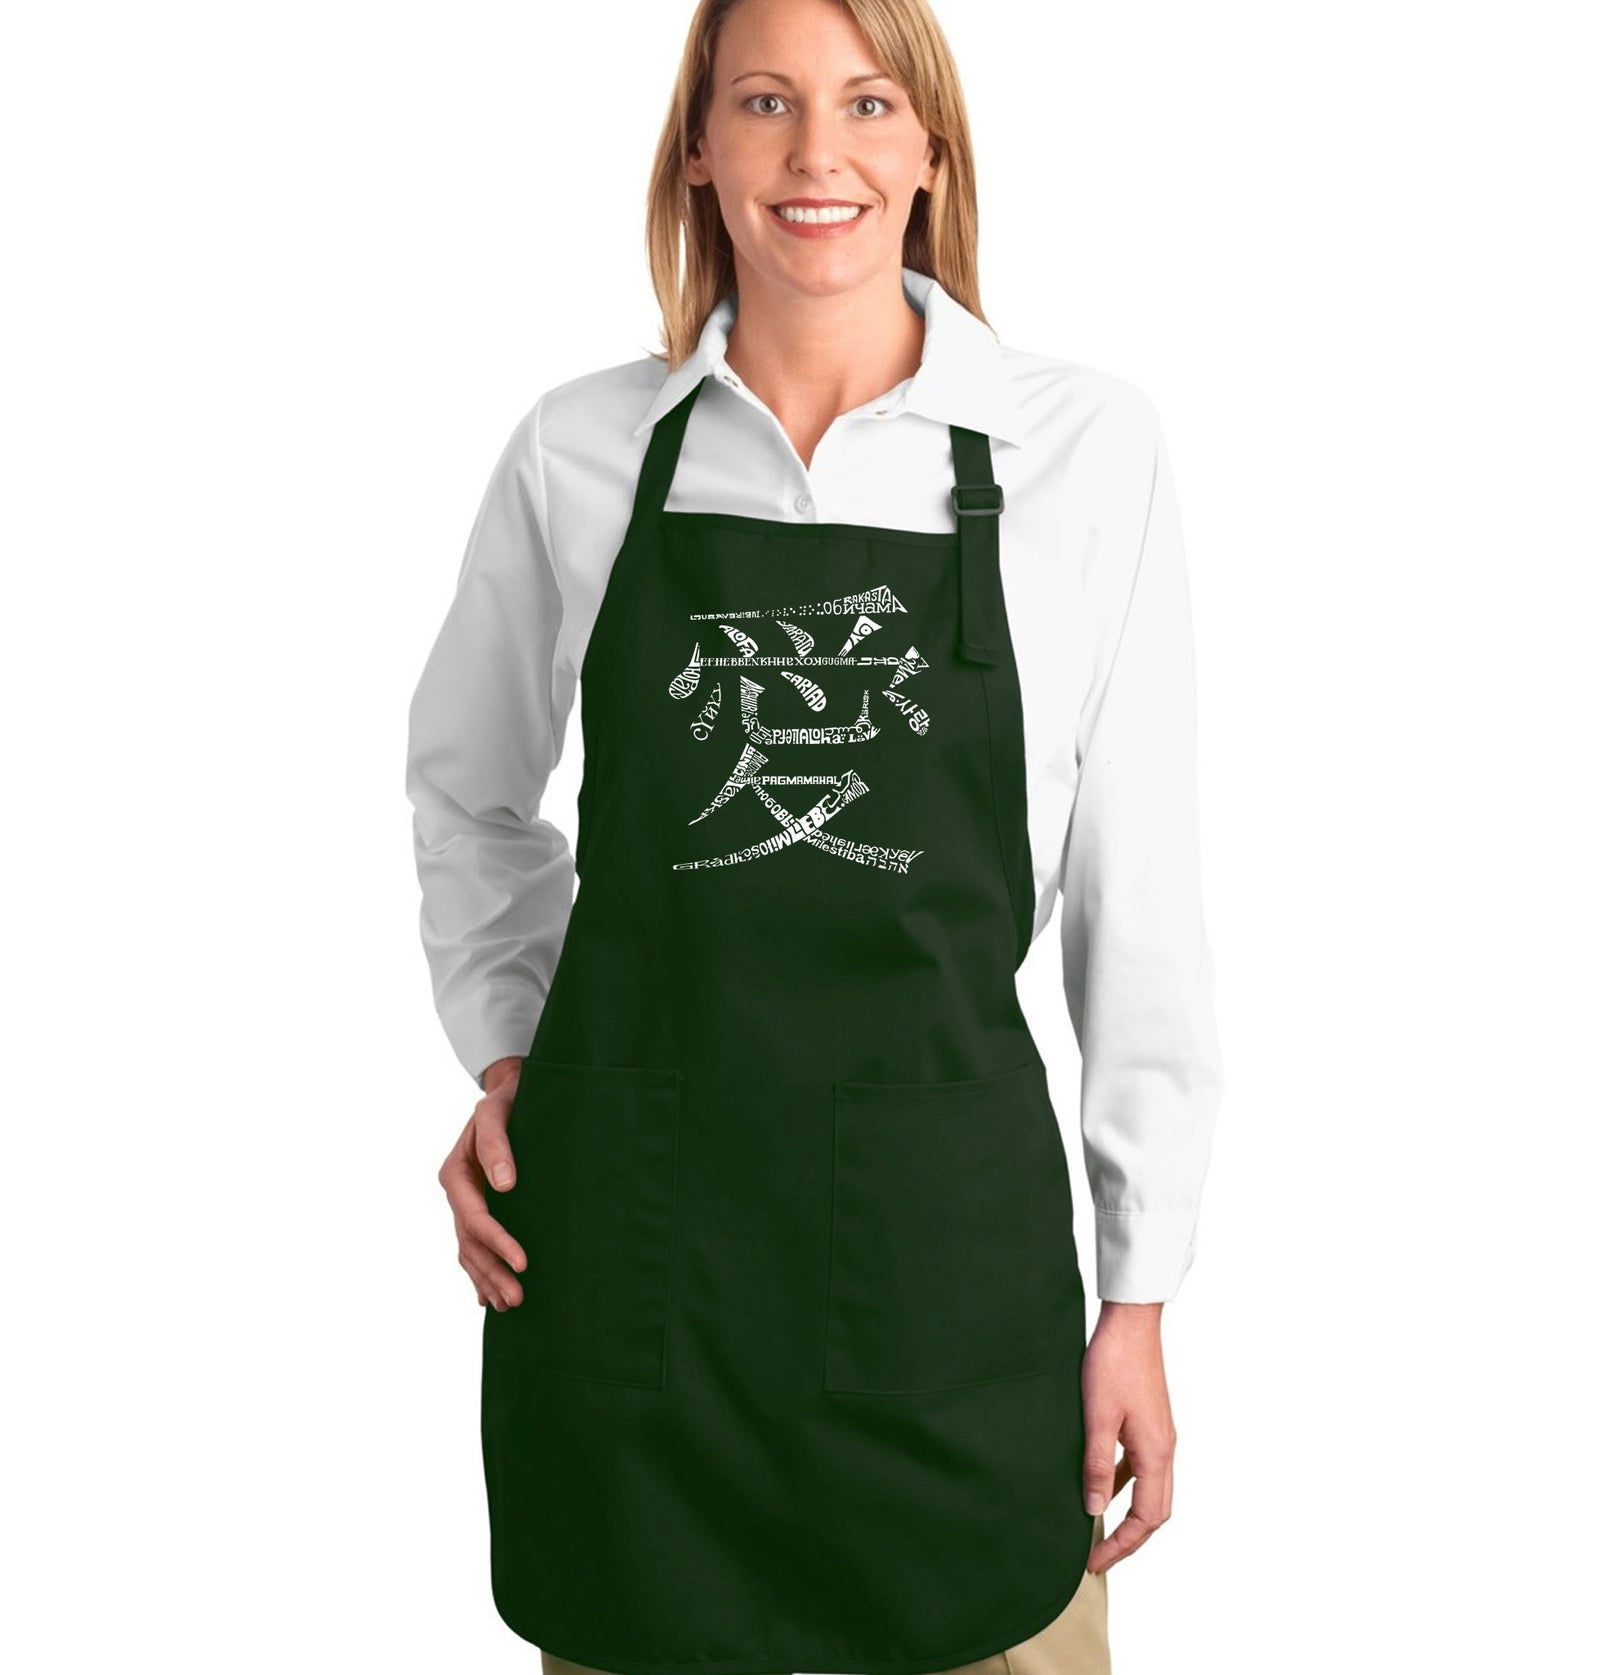 Full Length Apron - The Word Love in 44 Languages